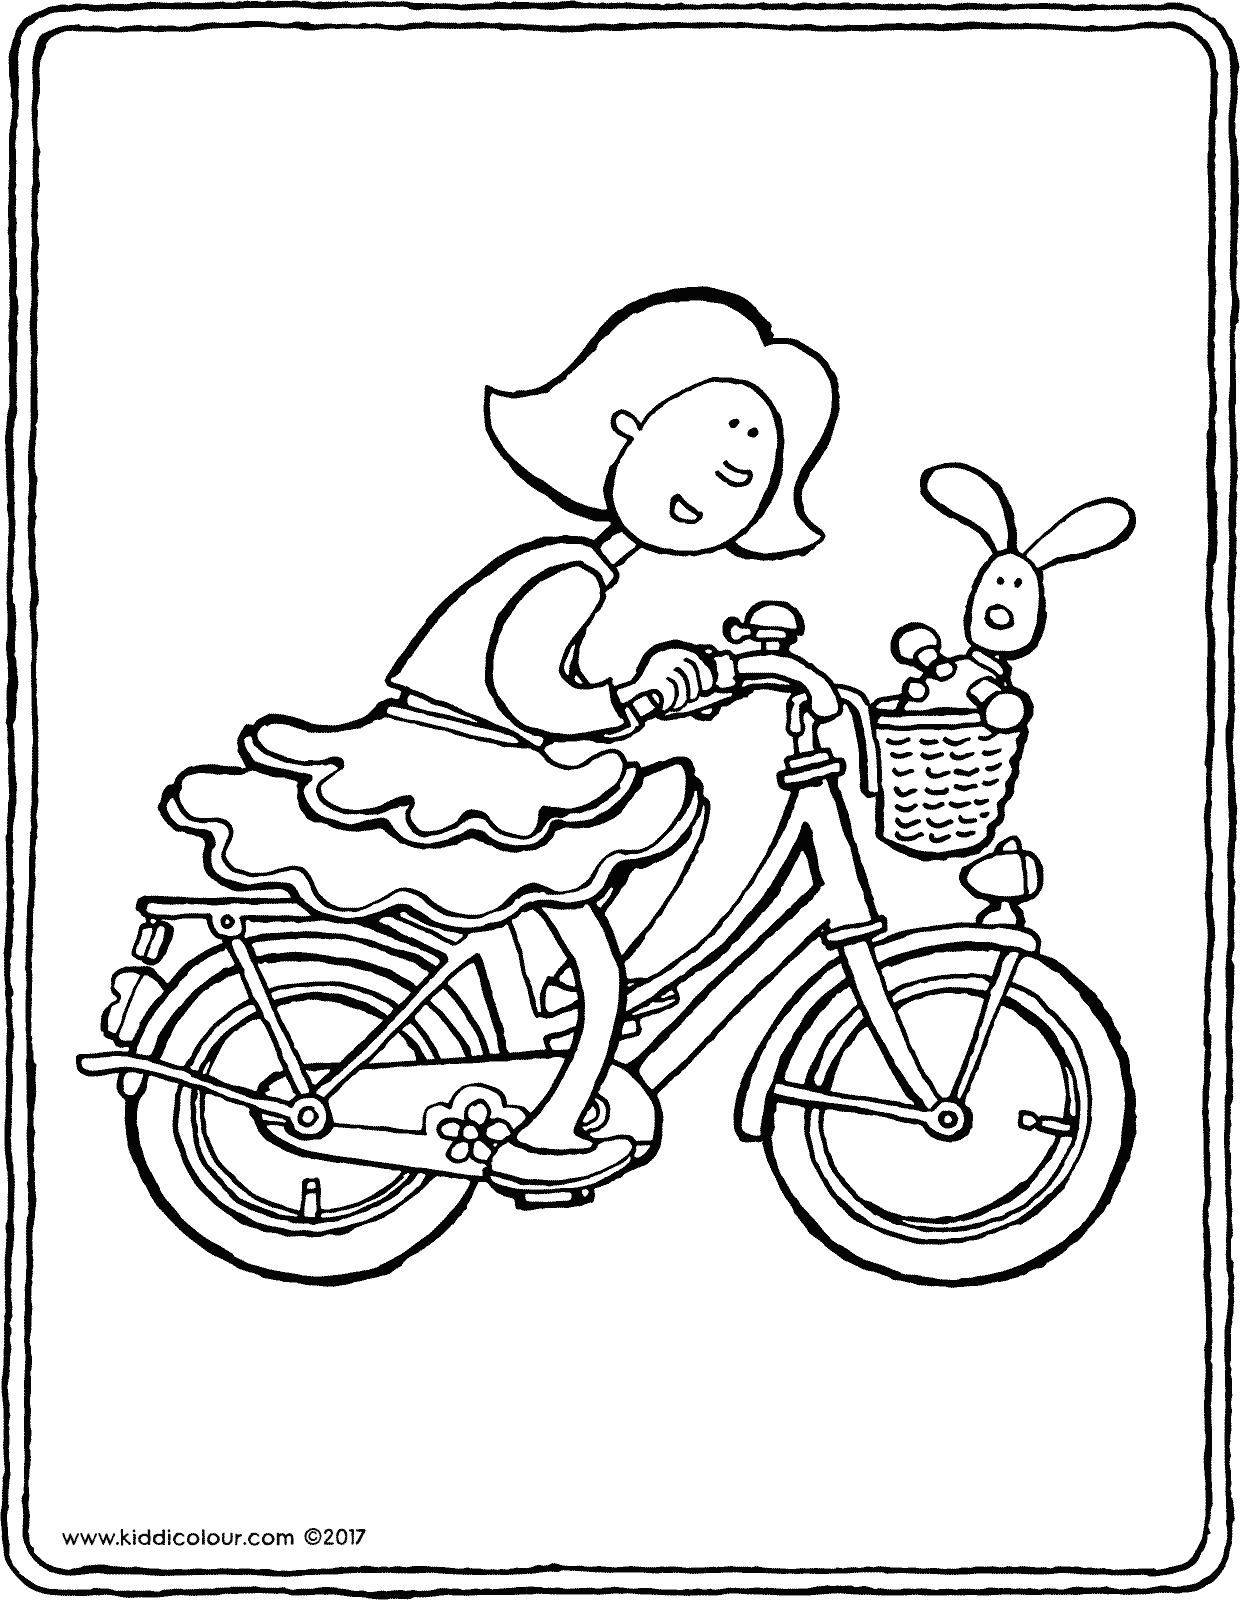 Emma on her bicycle colouring page drawing picture 01V